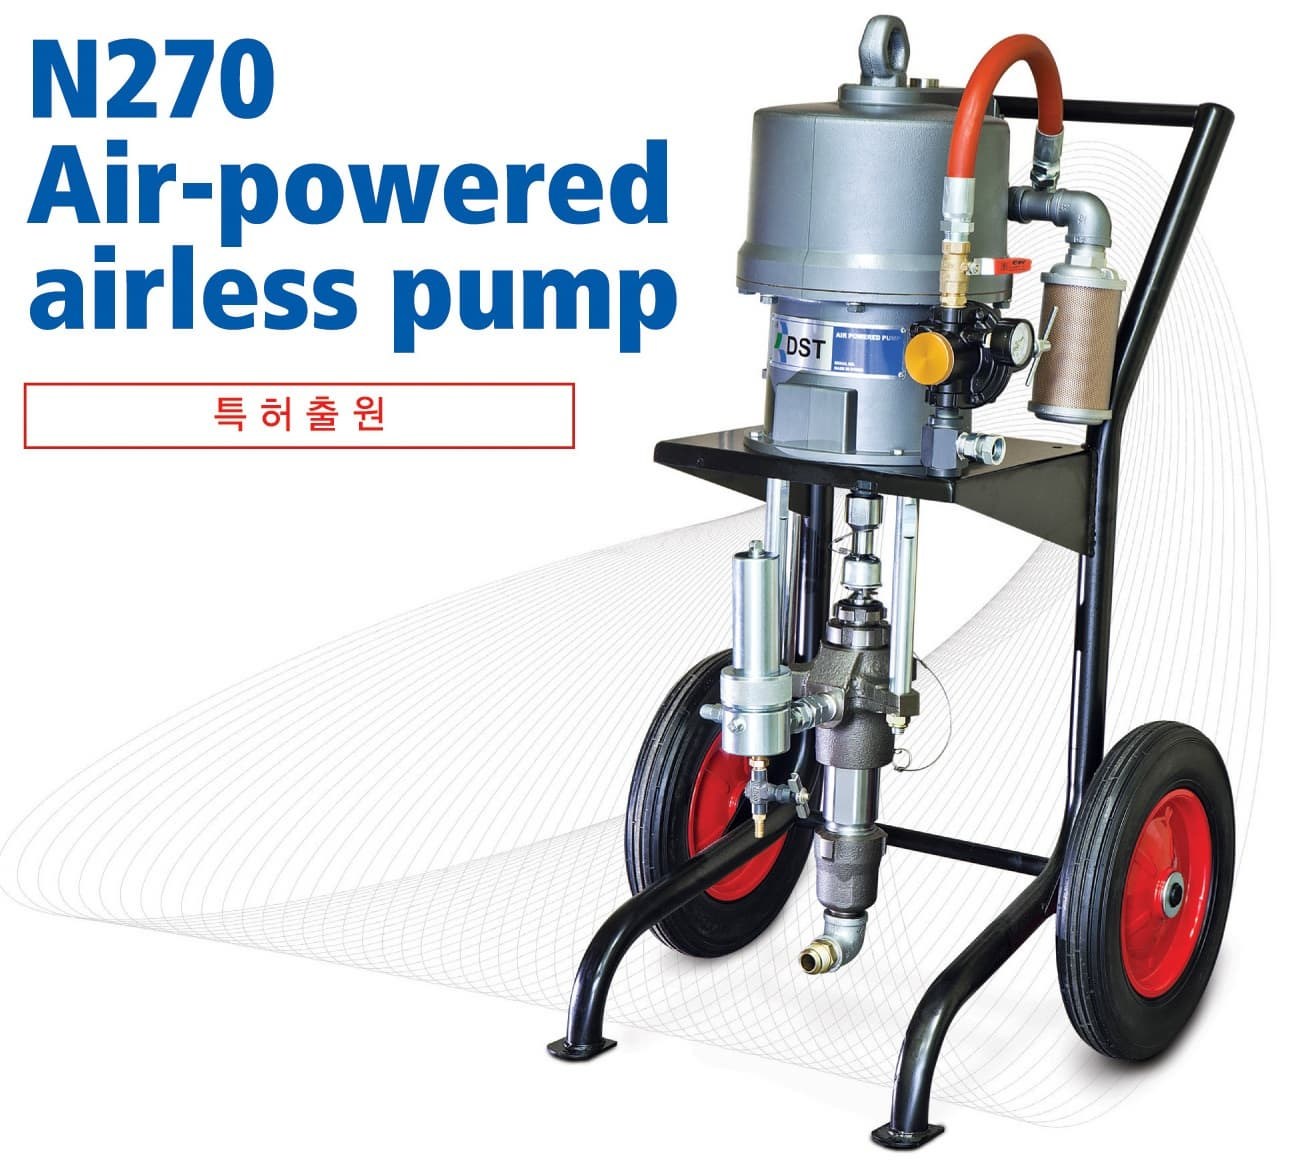 N270 air powered airless pump paint sprayer from dstech co for Air or airless paint sprayer